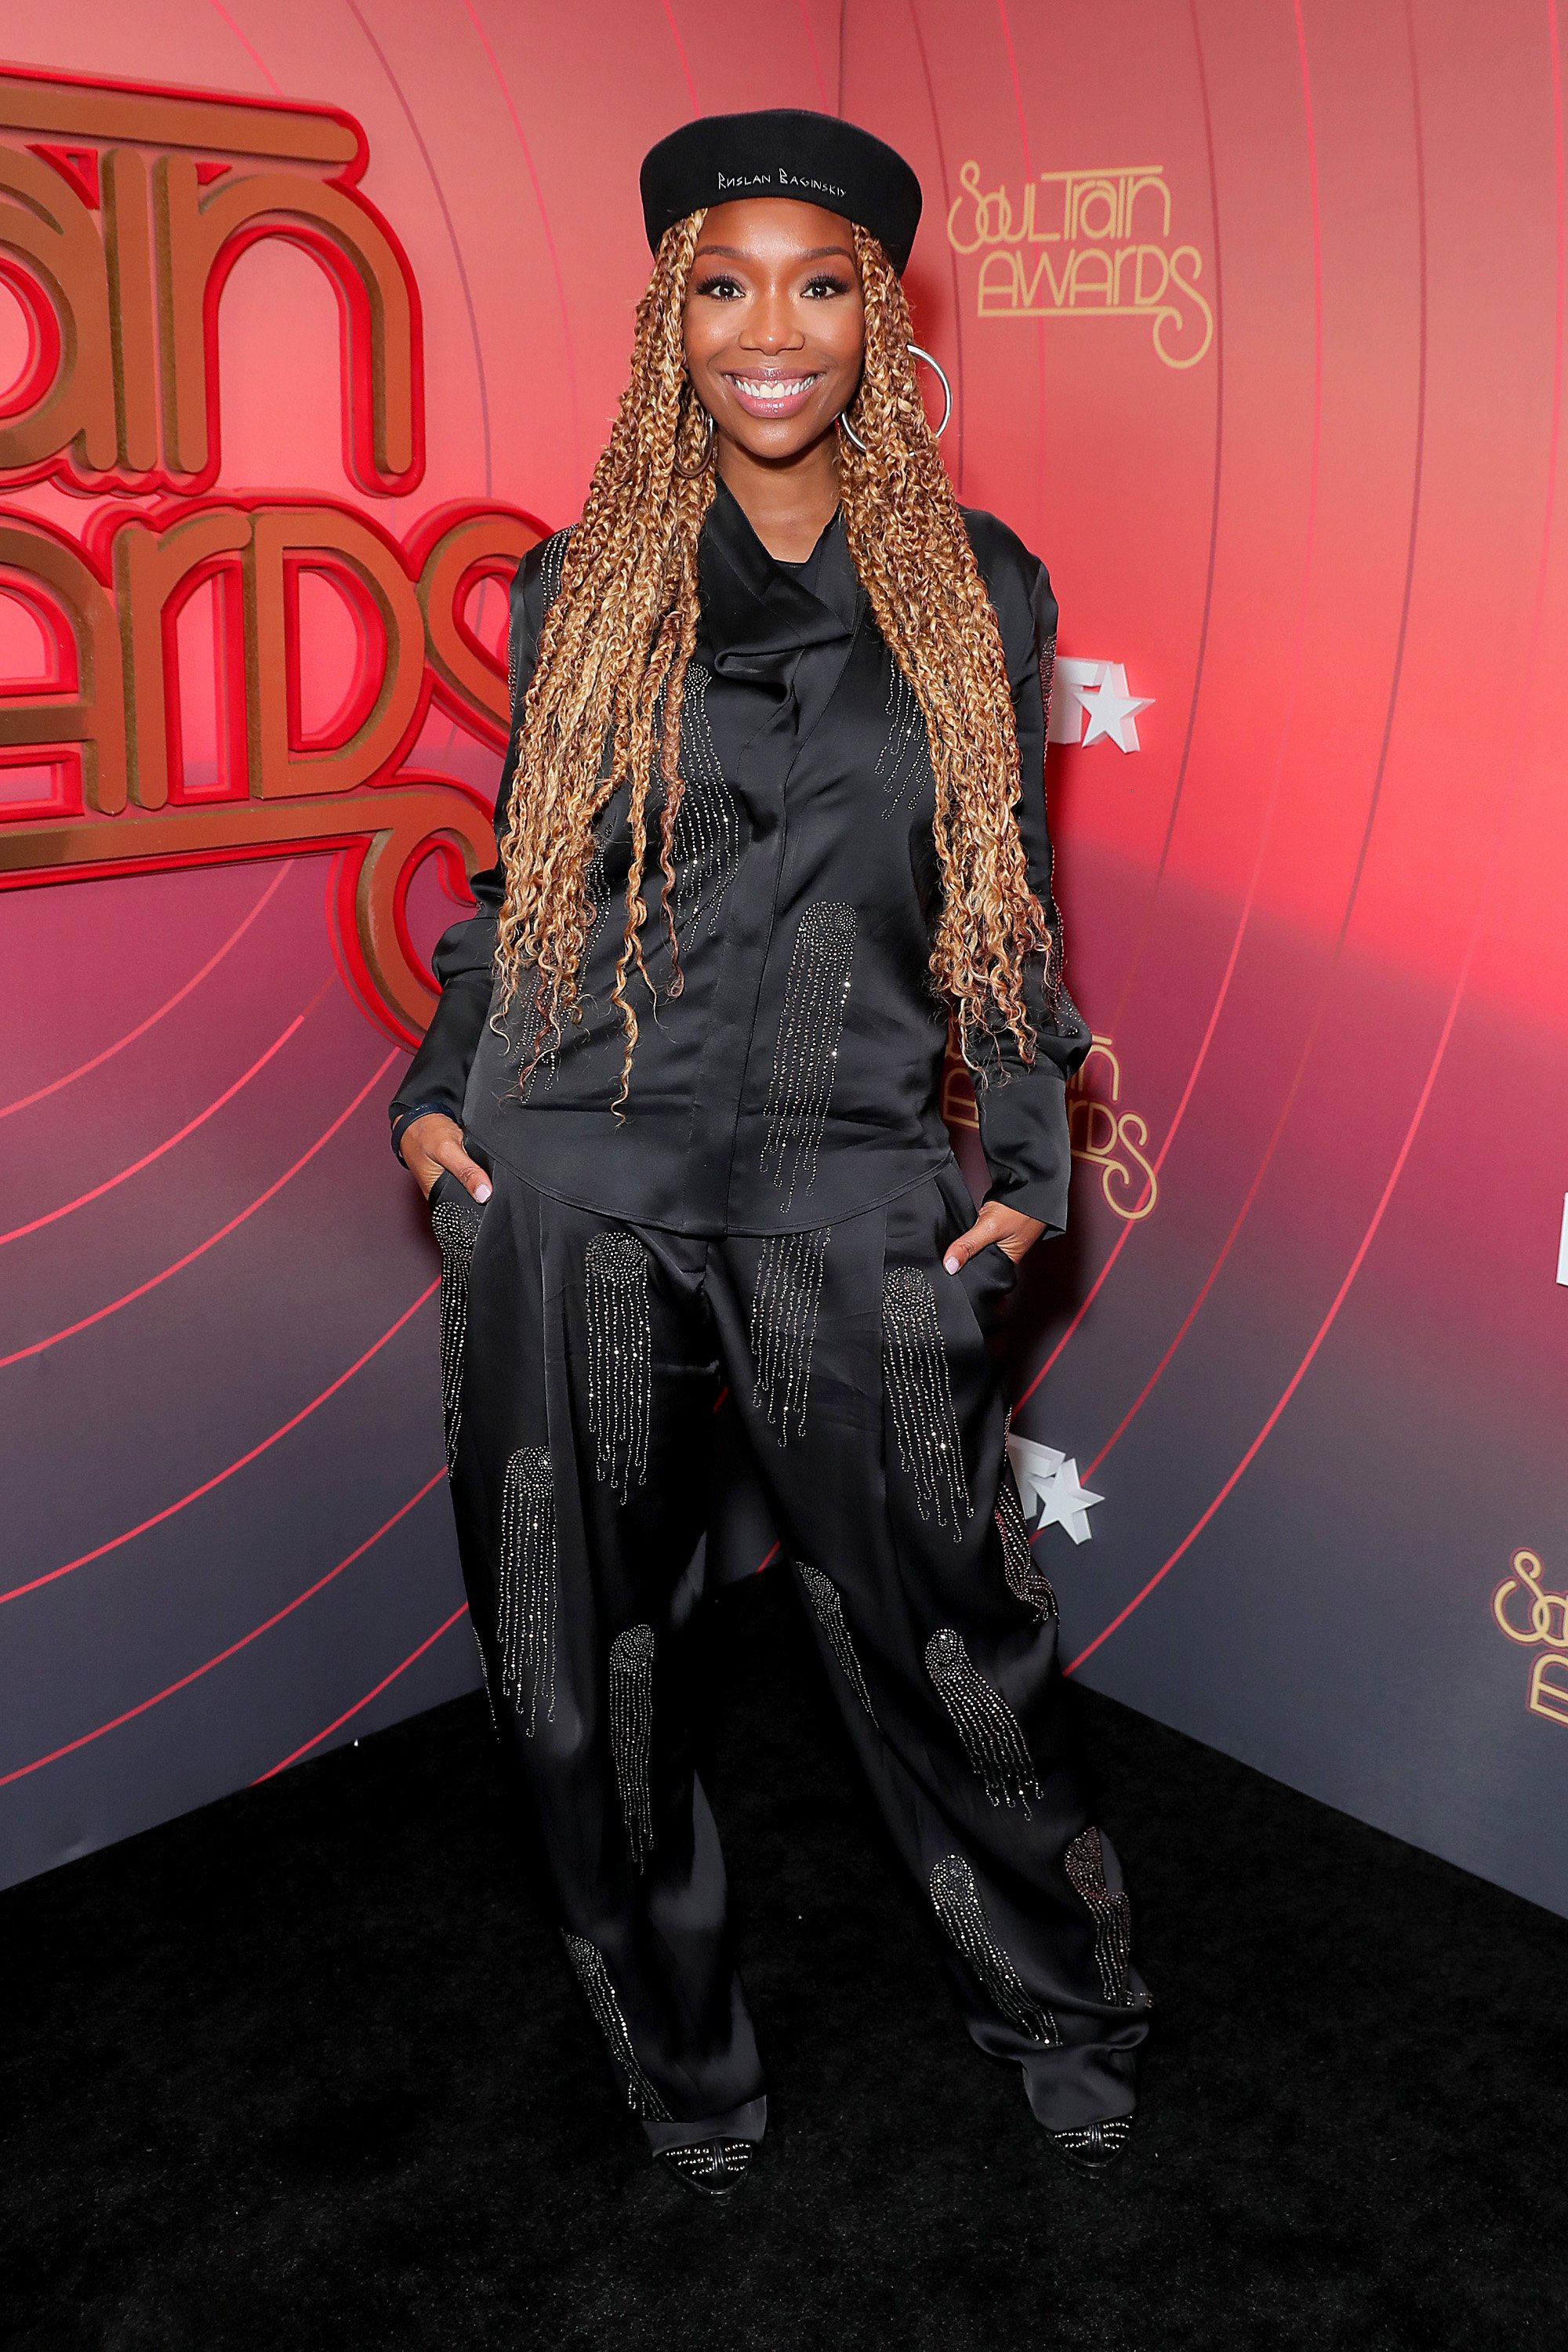 Brandy at the 2020 Soul Train Awards presented by BET | Source: Getty Images